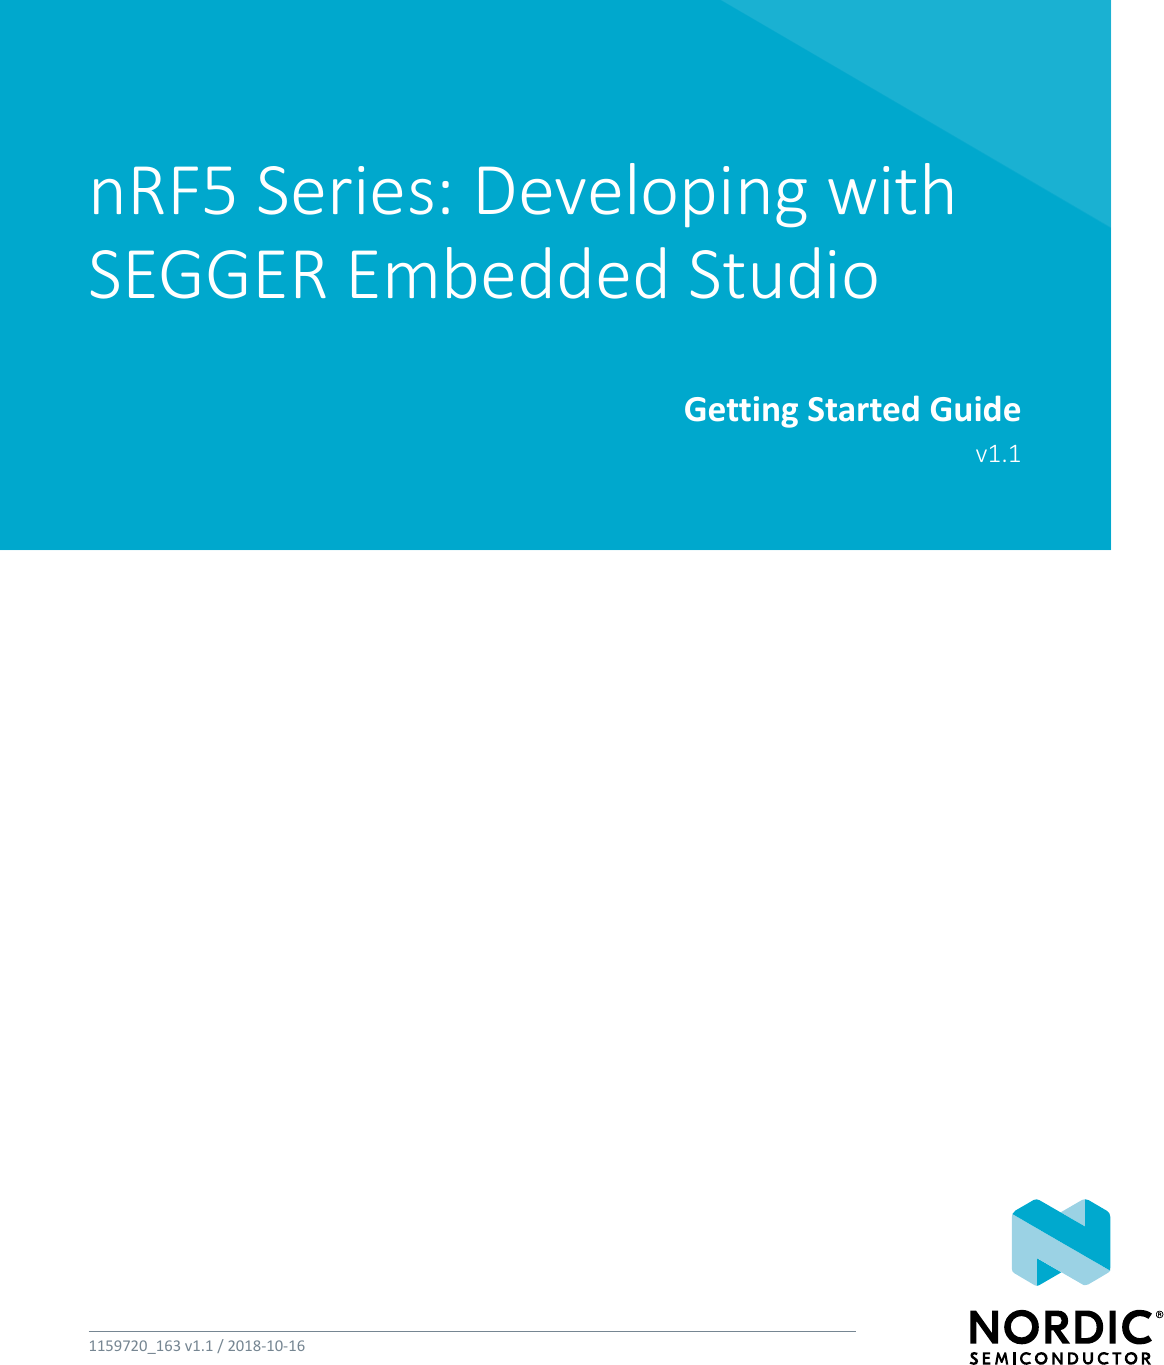 NRF5 Series: Developing With SEGGER Embedded Studio Getting